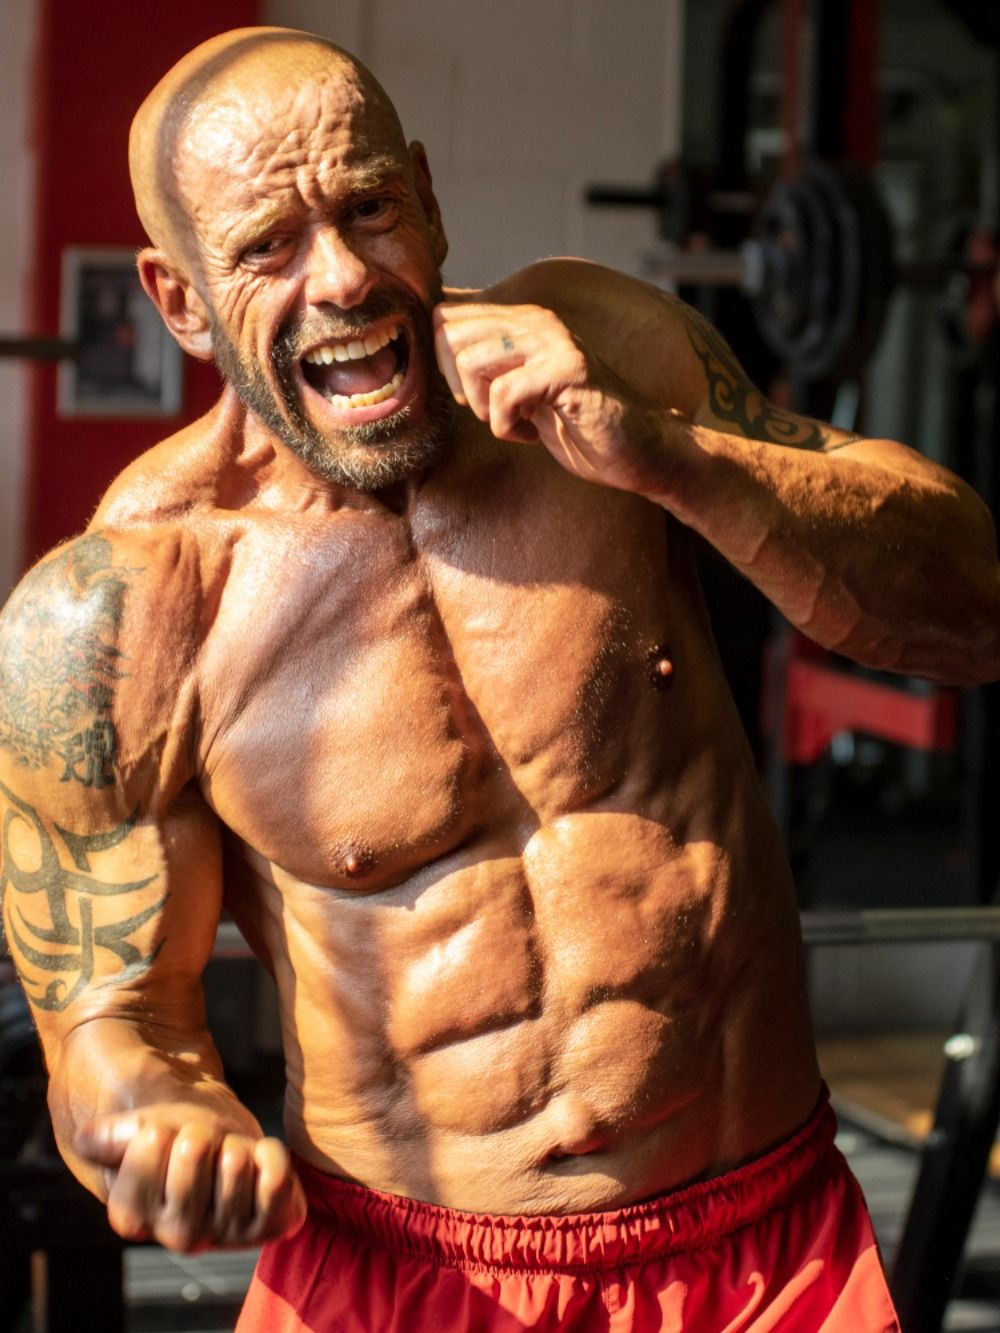 How to stay shredded and ripped all year round Get in